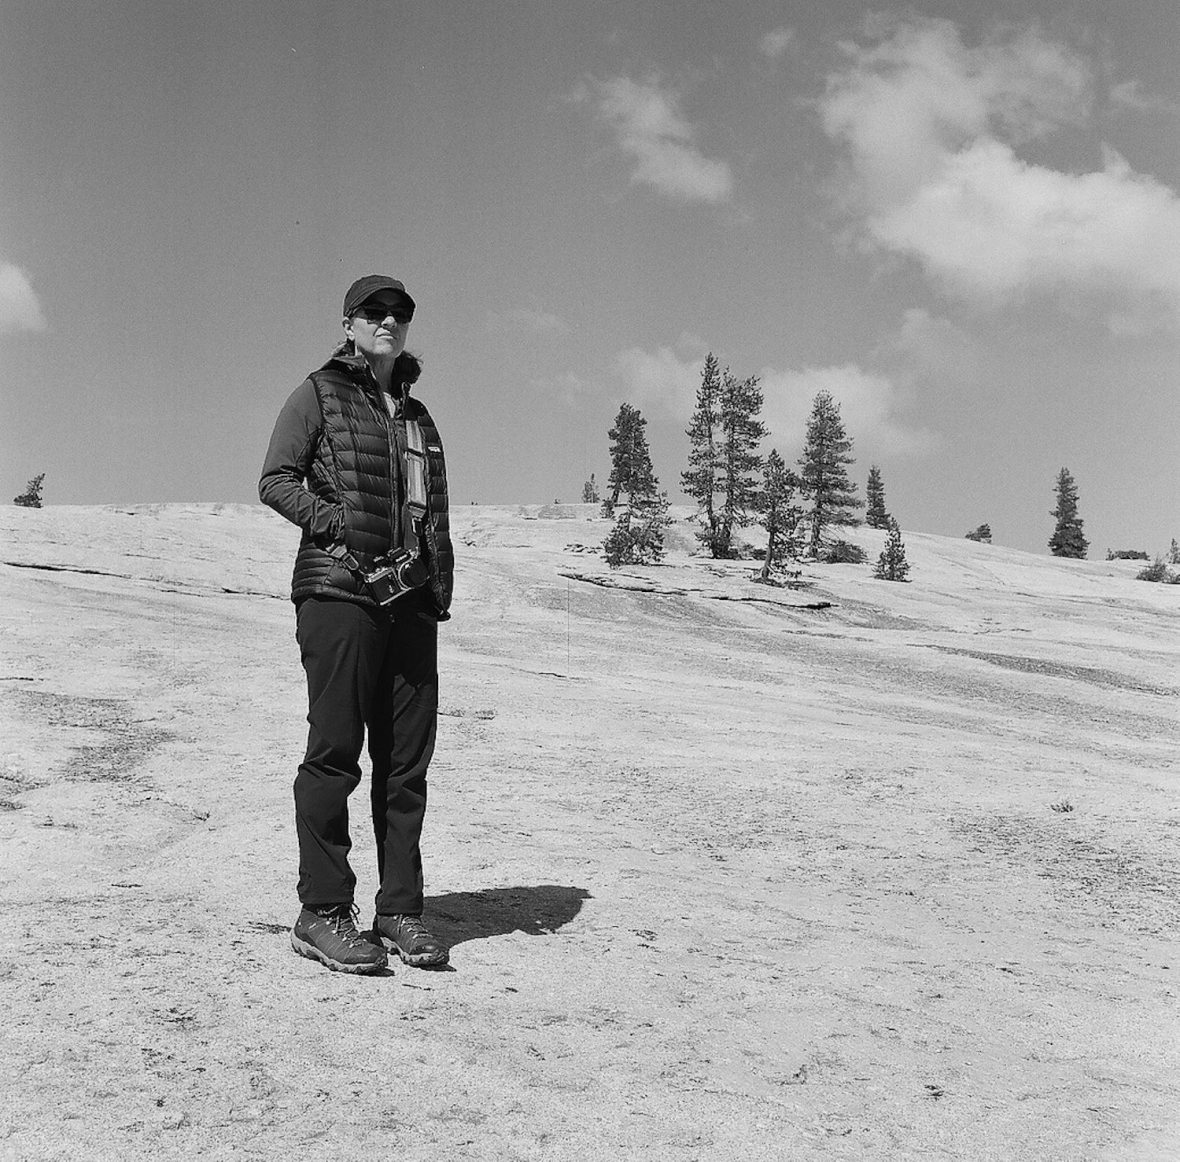 Medium format 120mm monochrome film photography Marsi hiking a granite dome in Yosemite National Park